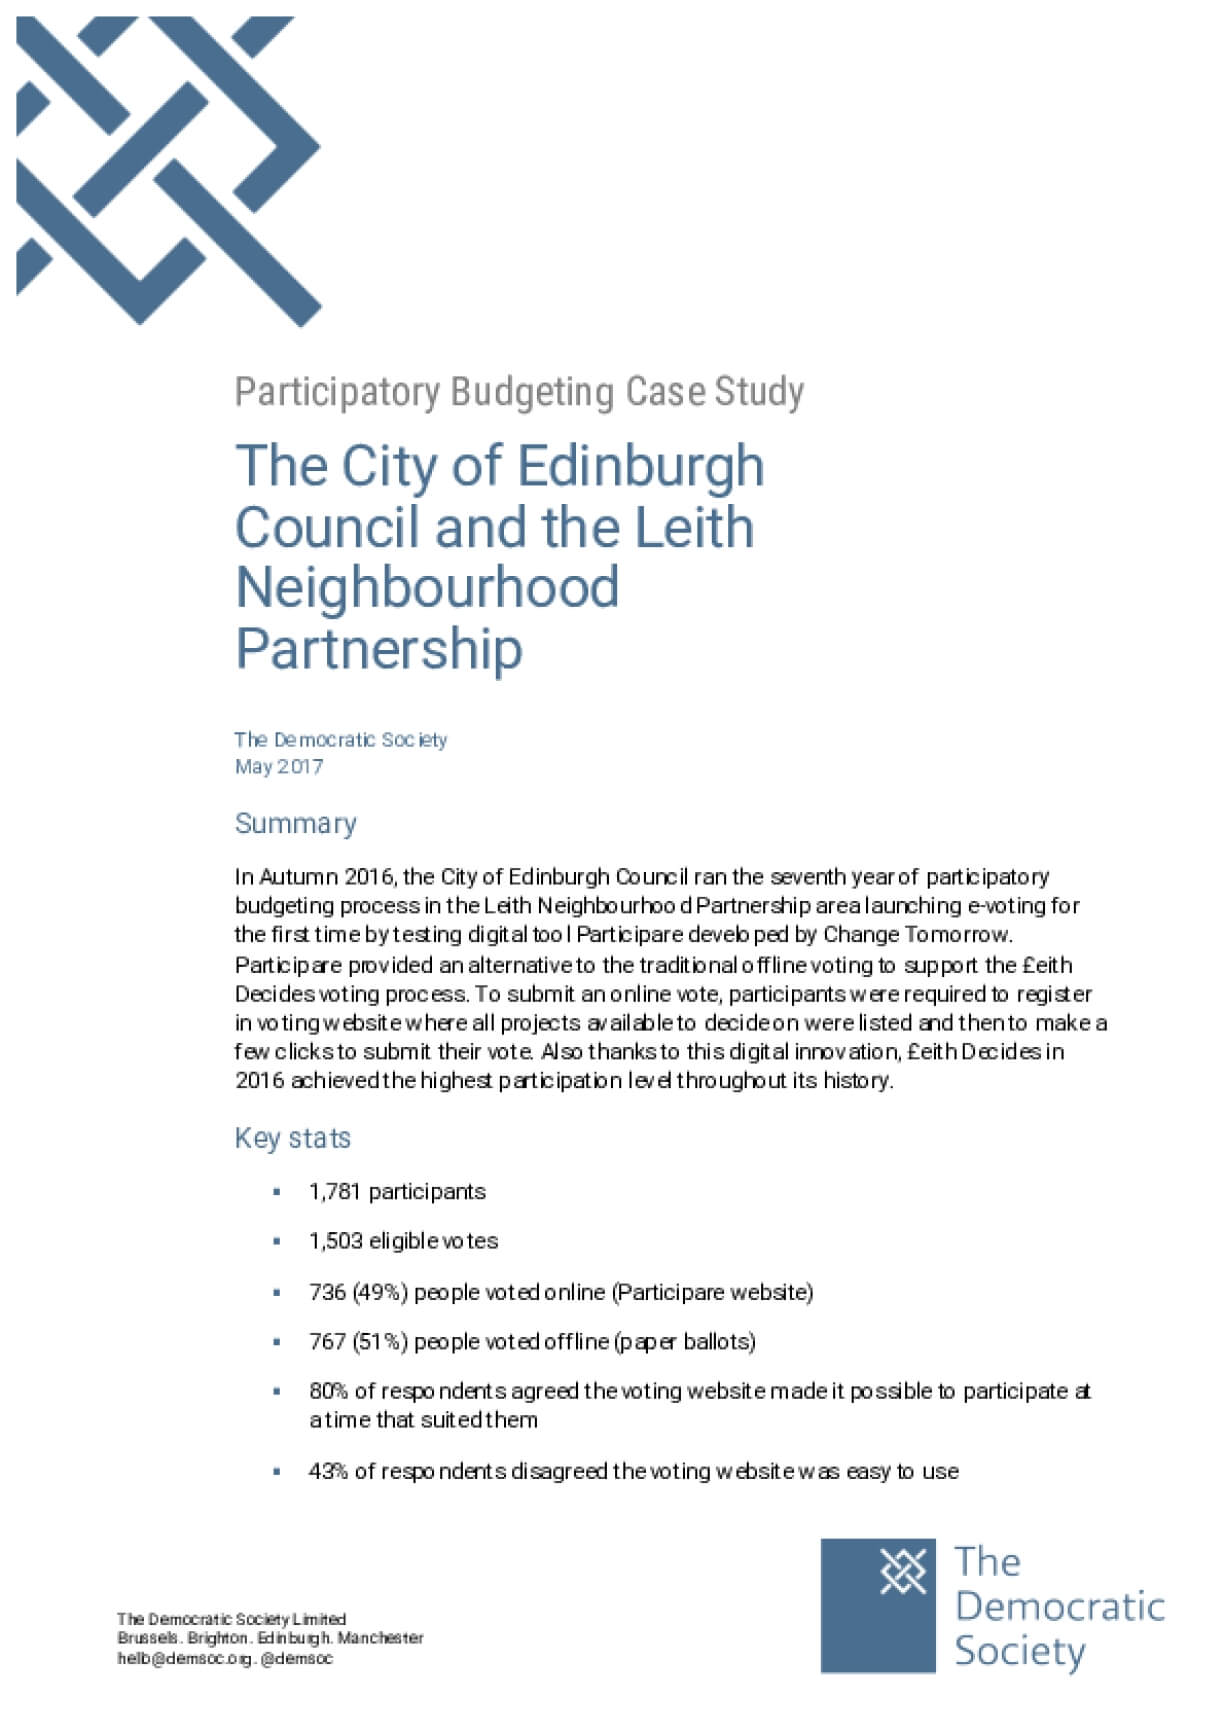 Participatory Budgeting Case Study: The City of Edinburgh Council and the Leith Neighbourhood Partnership